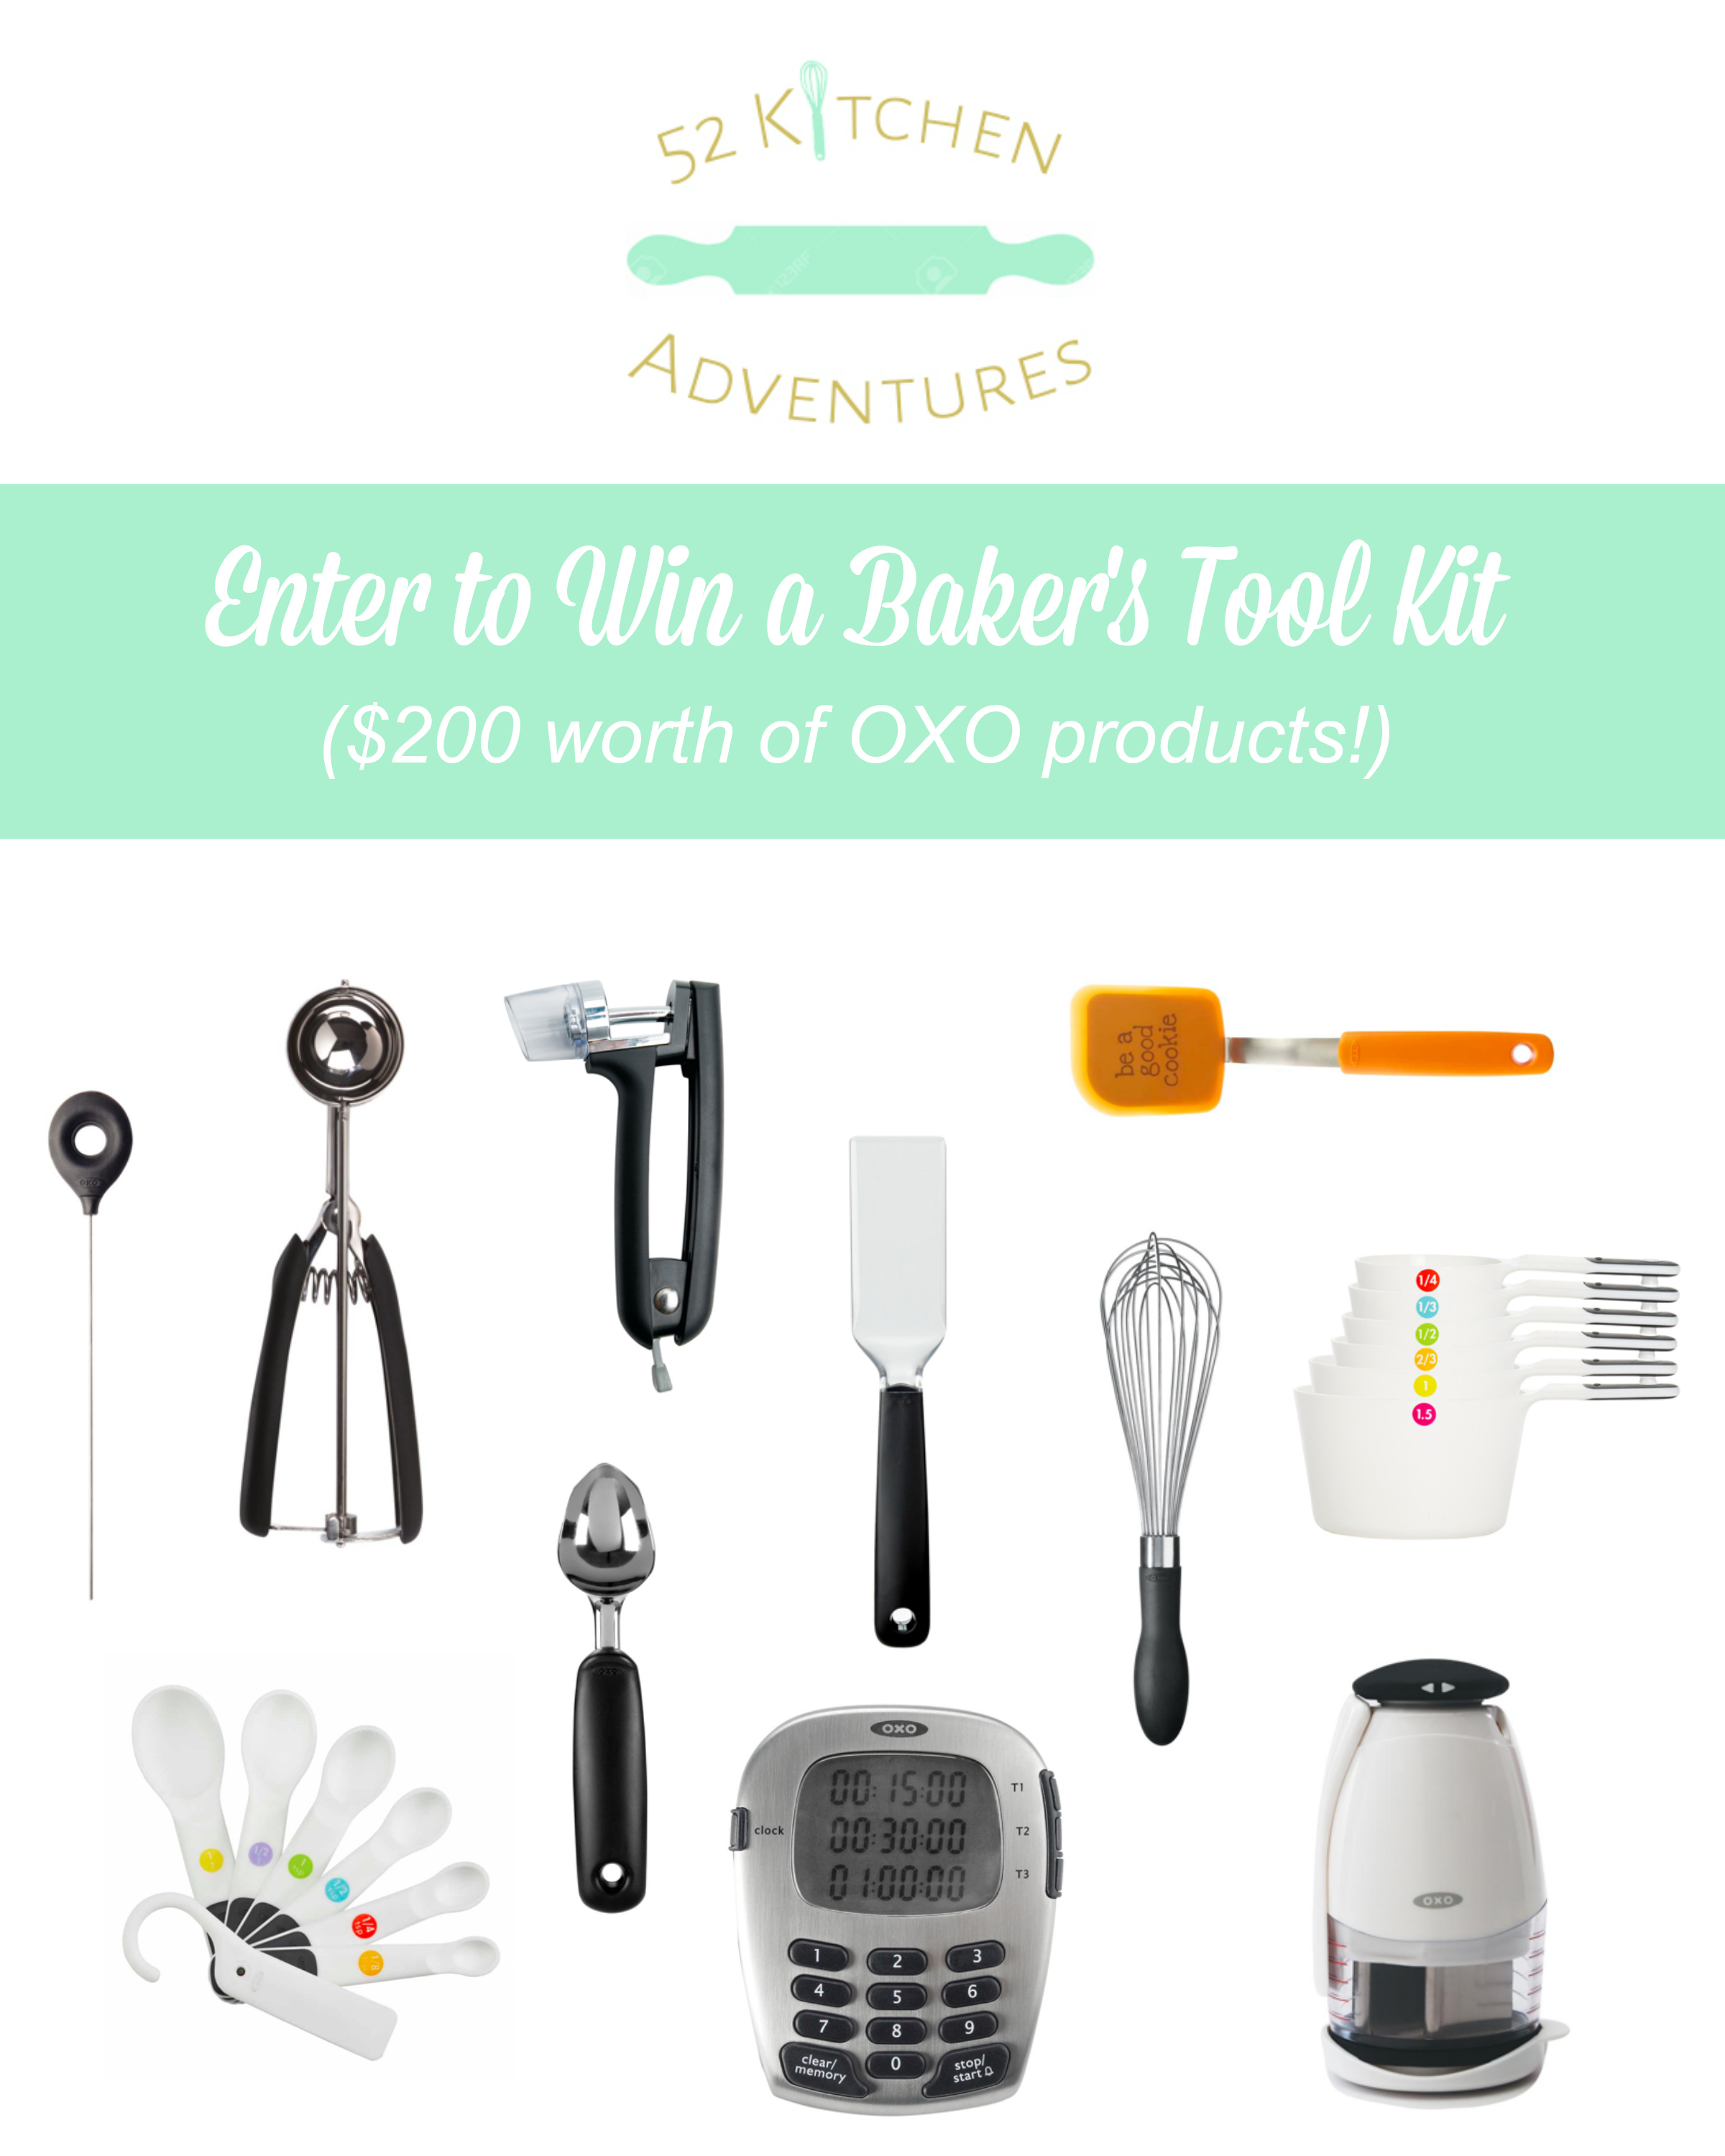 Enter to Win Baker's Tool Kit